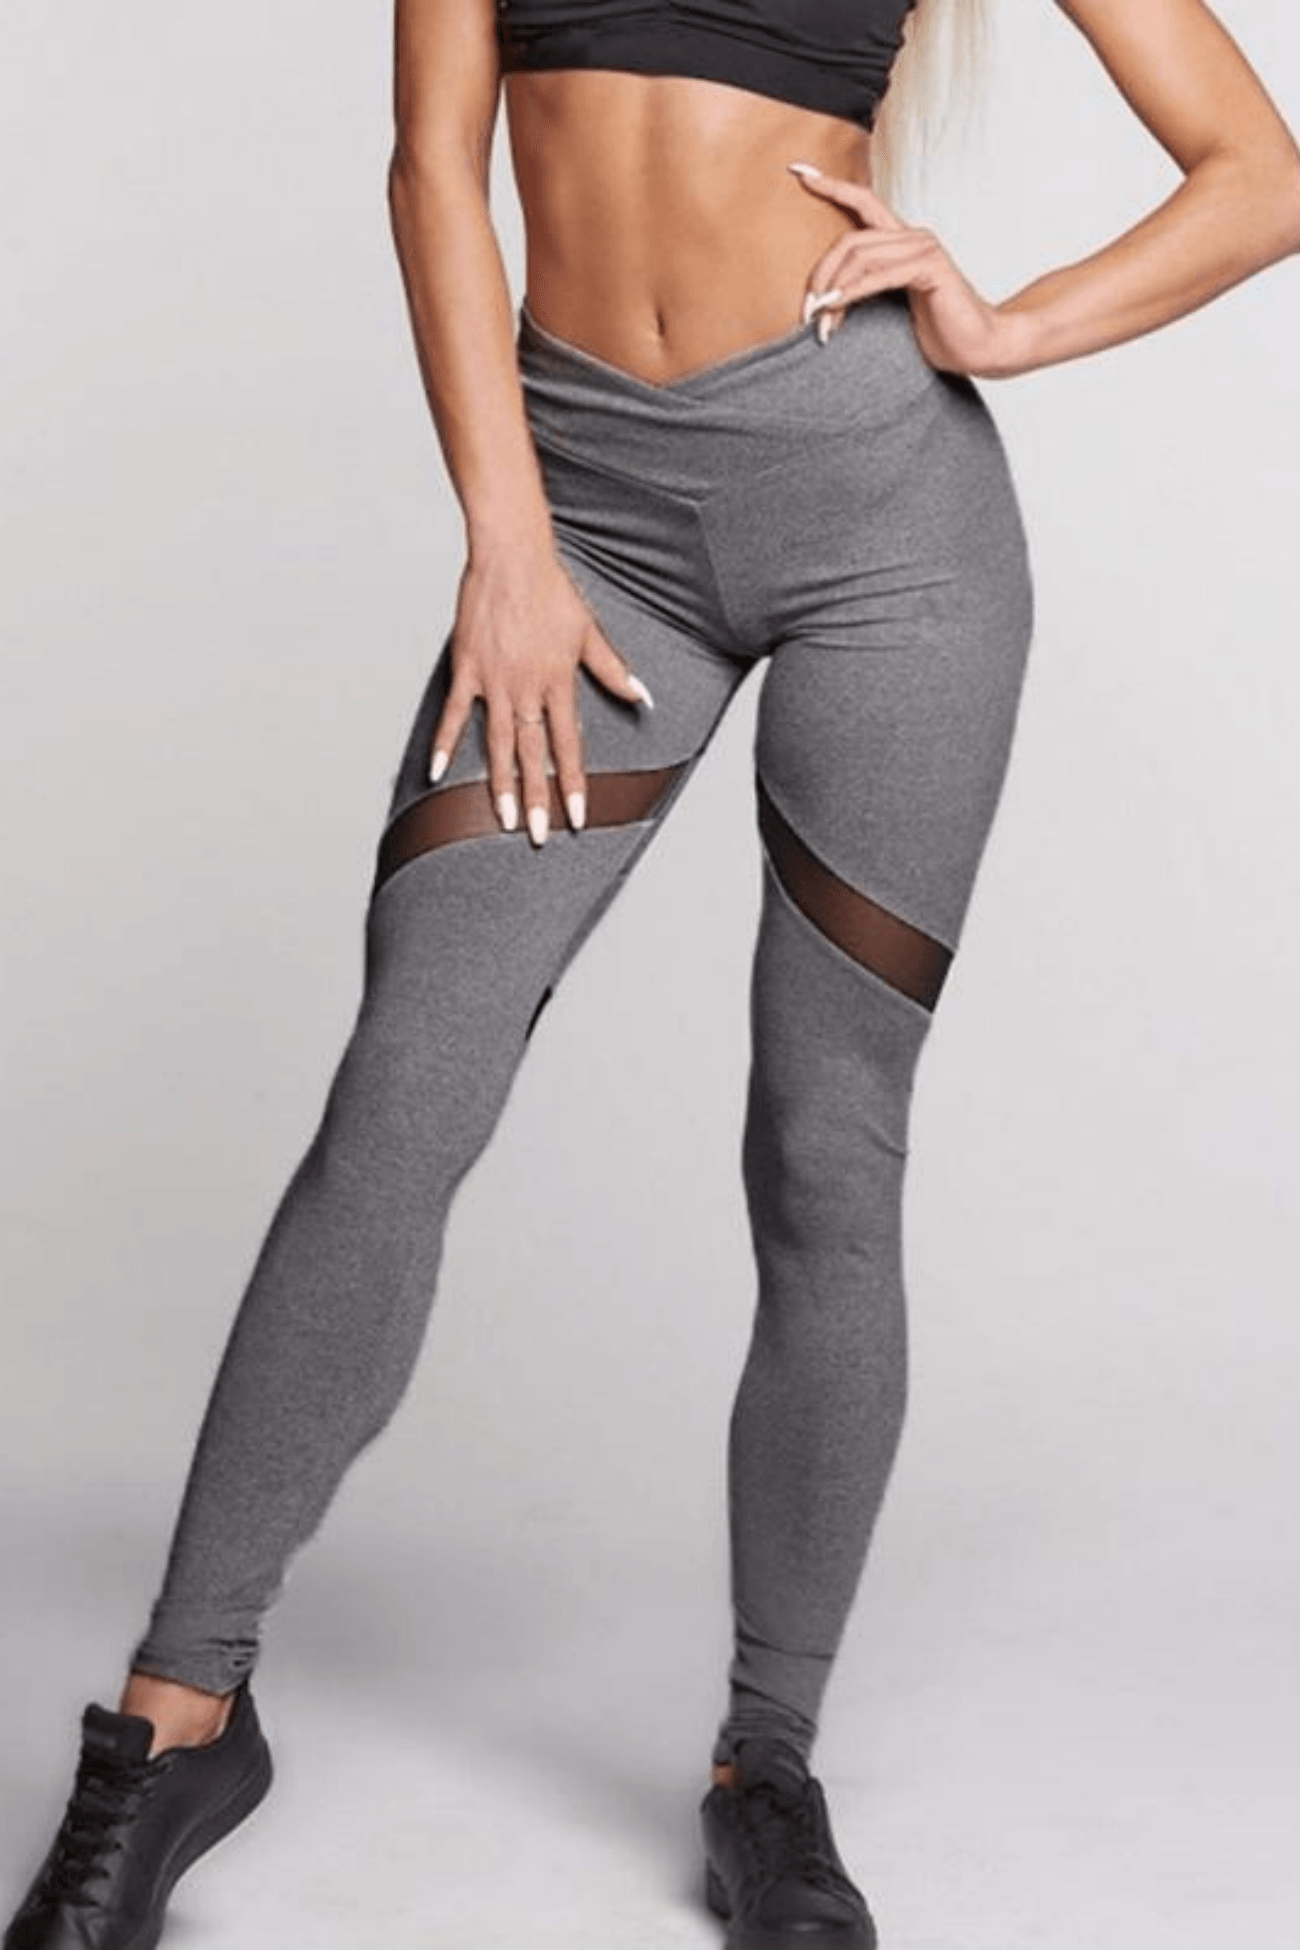 Performance Mesh Booty Heart Leggings<br> Grey - Muscle Fitness Factory